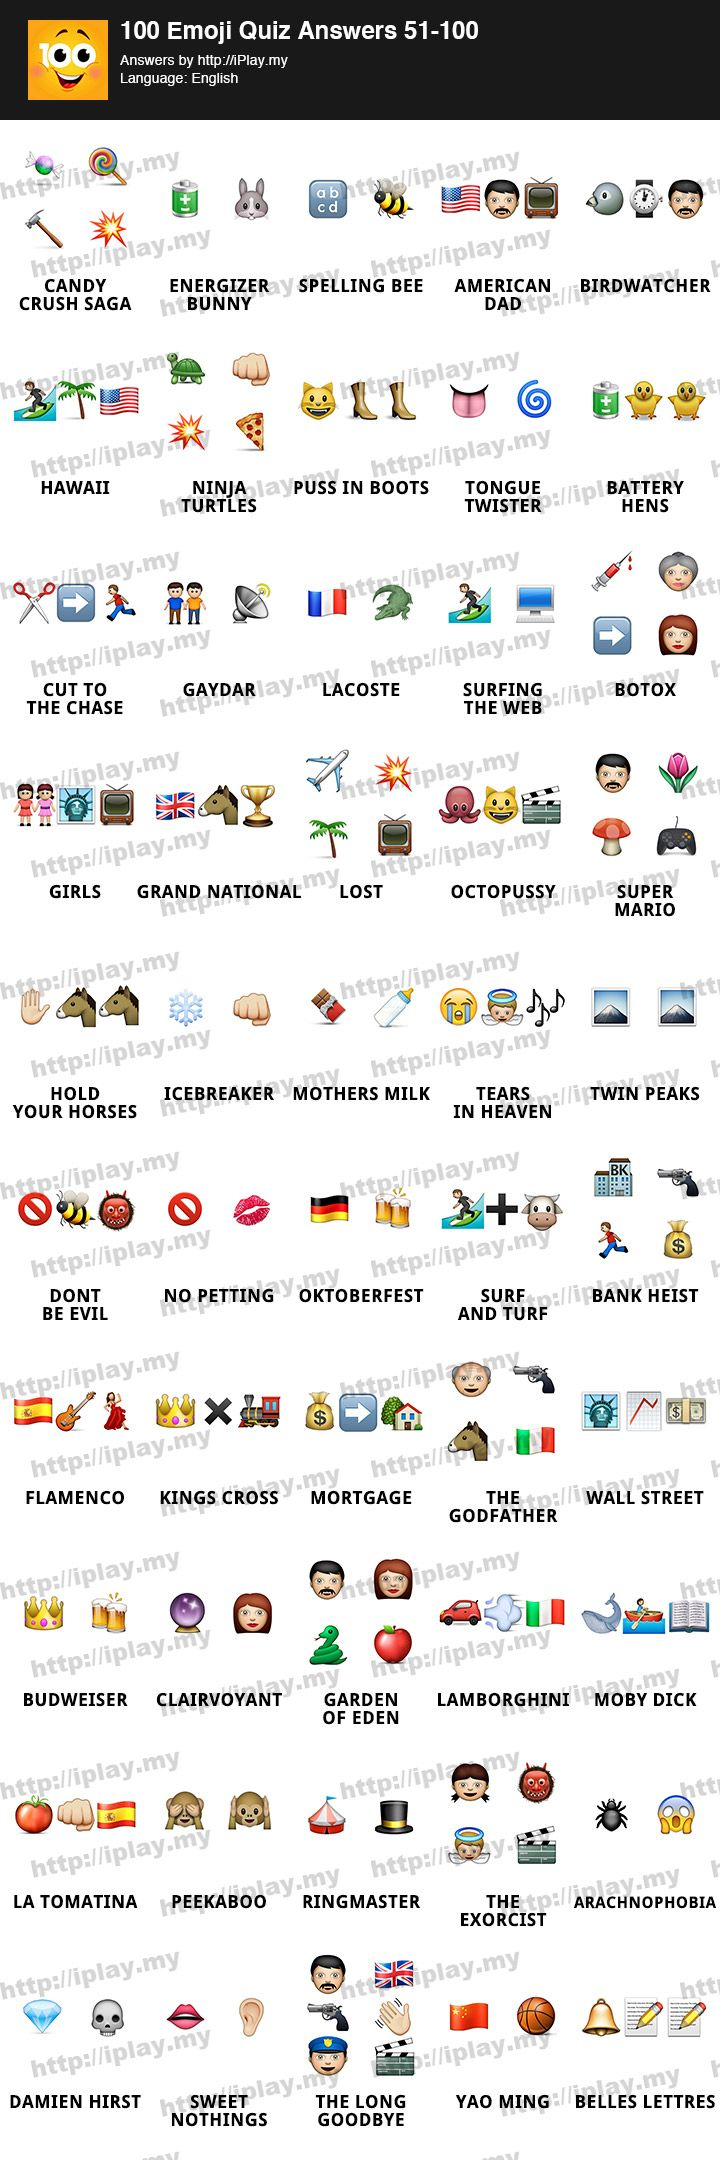 Love To Play Emoji Quiz You Will Love This Pack From 100 Pics Creator Reveal The Pics And Just Guess Th Emoji Quiz Emoji Quiz Answers Guess The Emoji Answers